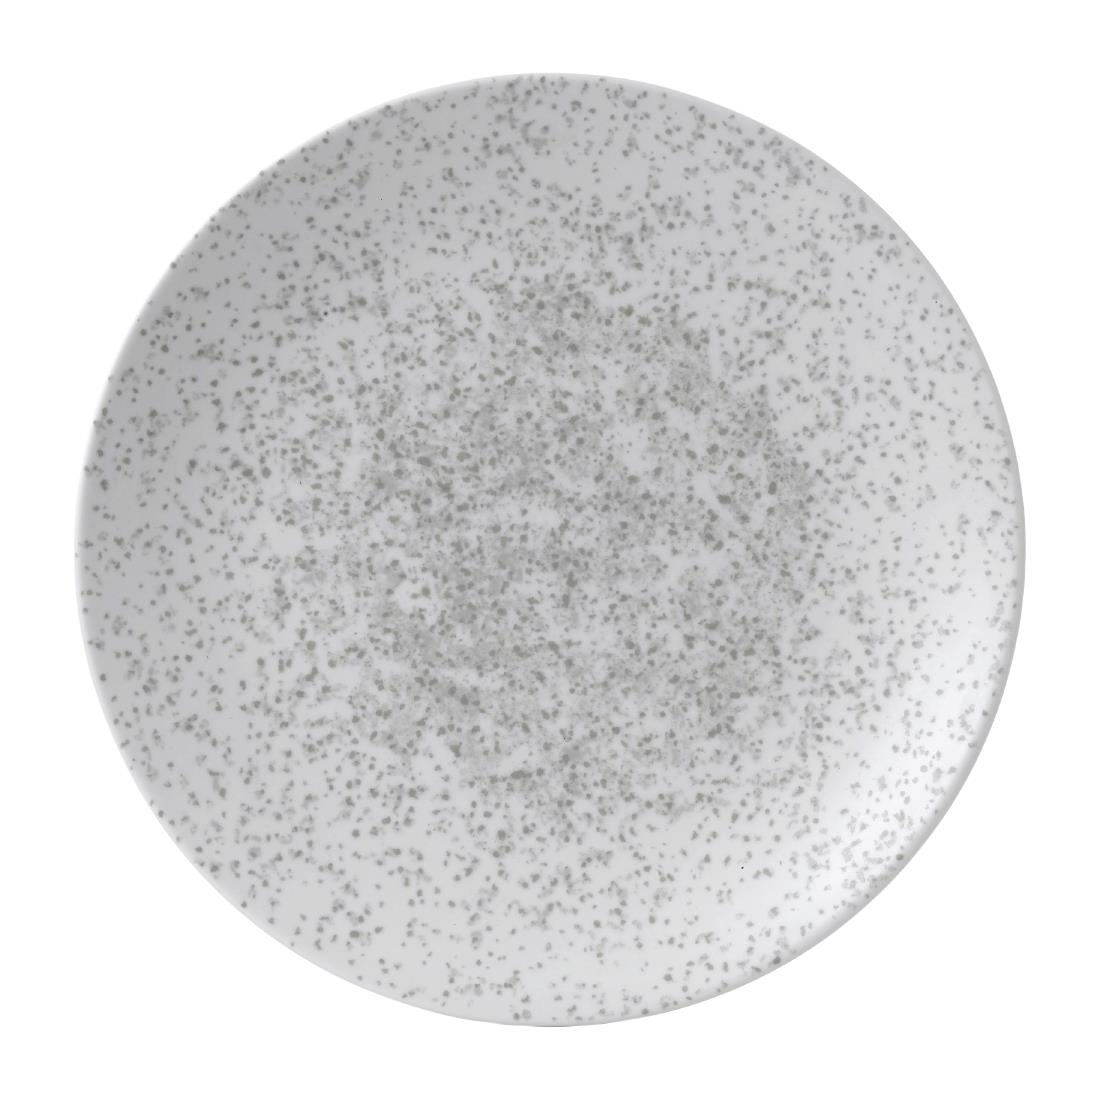 Image of Churchill Art De Cuisine Menu Shades Coupe Plates Caldera Chalk White 289mm (Pack of 6) Pack of 6